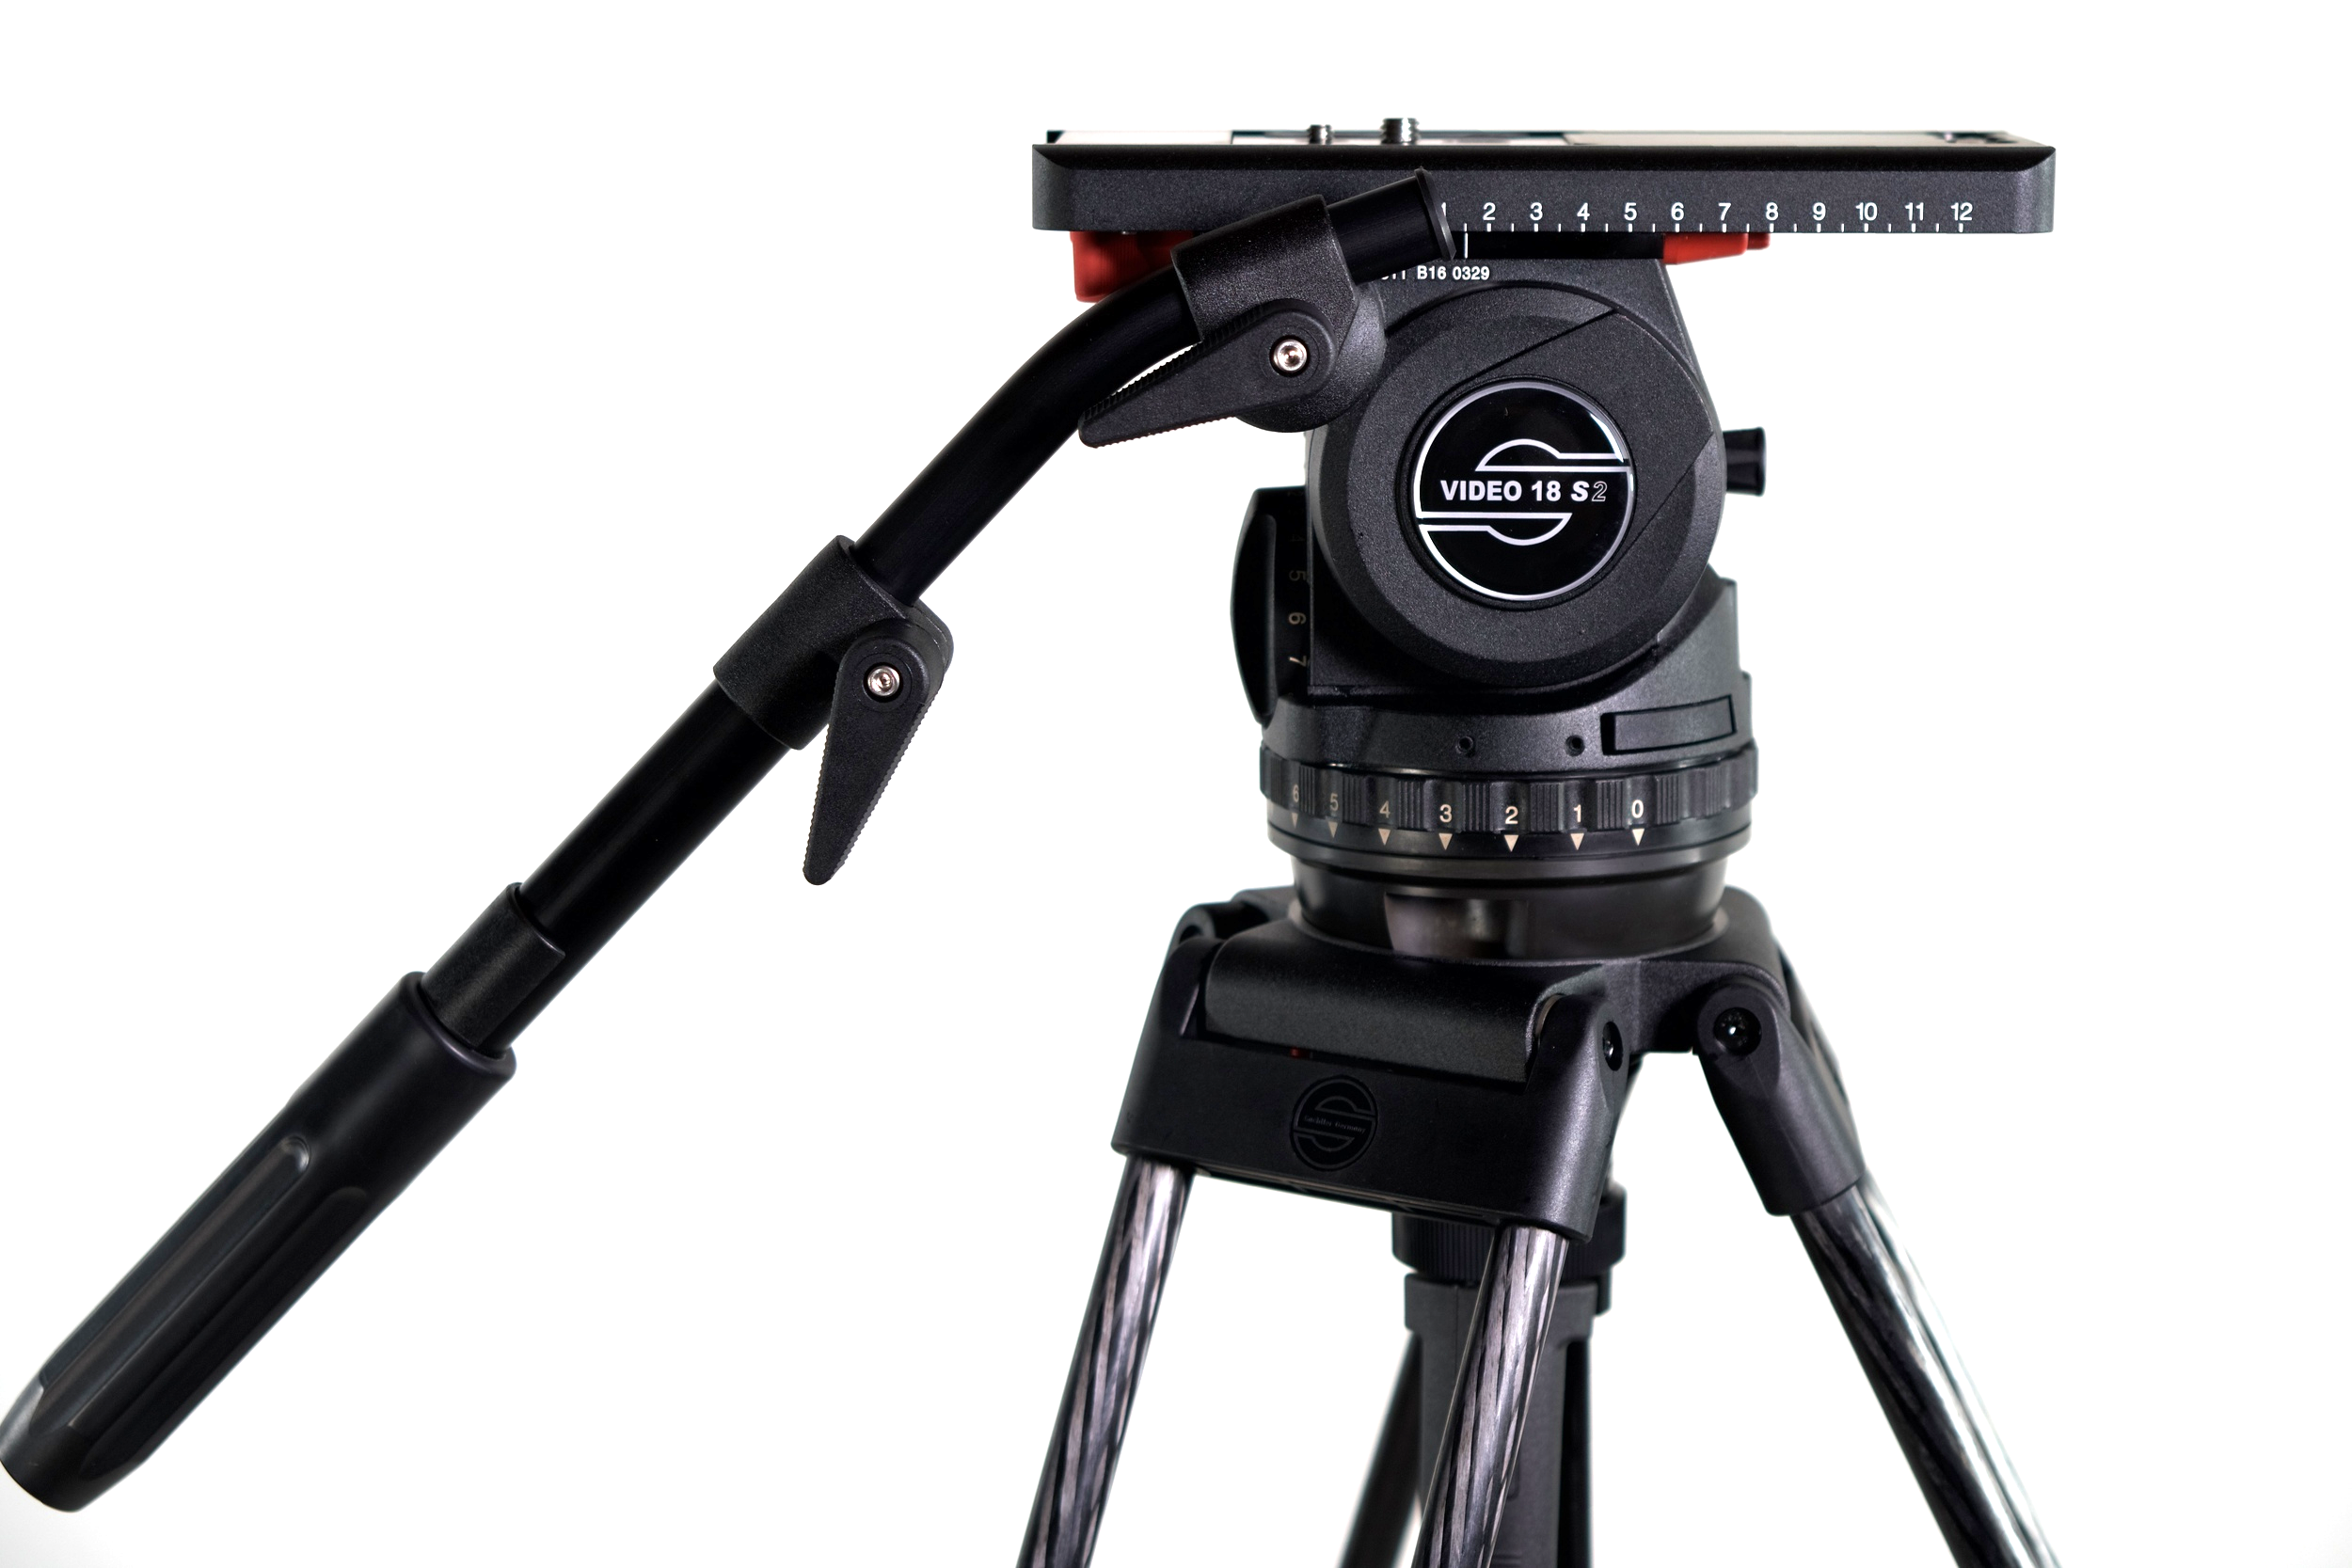 Sachtler Video 18 S2  is by far the best -- and most expensive ($5,250)-- fluid head I've ever used. Ditto for the sticks,  Sachtler Speed Lock CF ($1,890)